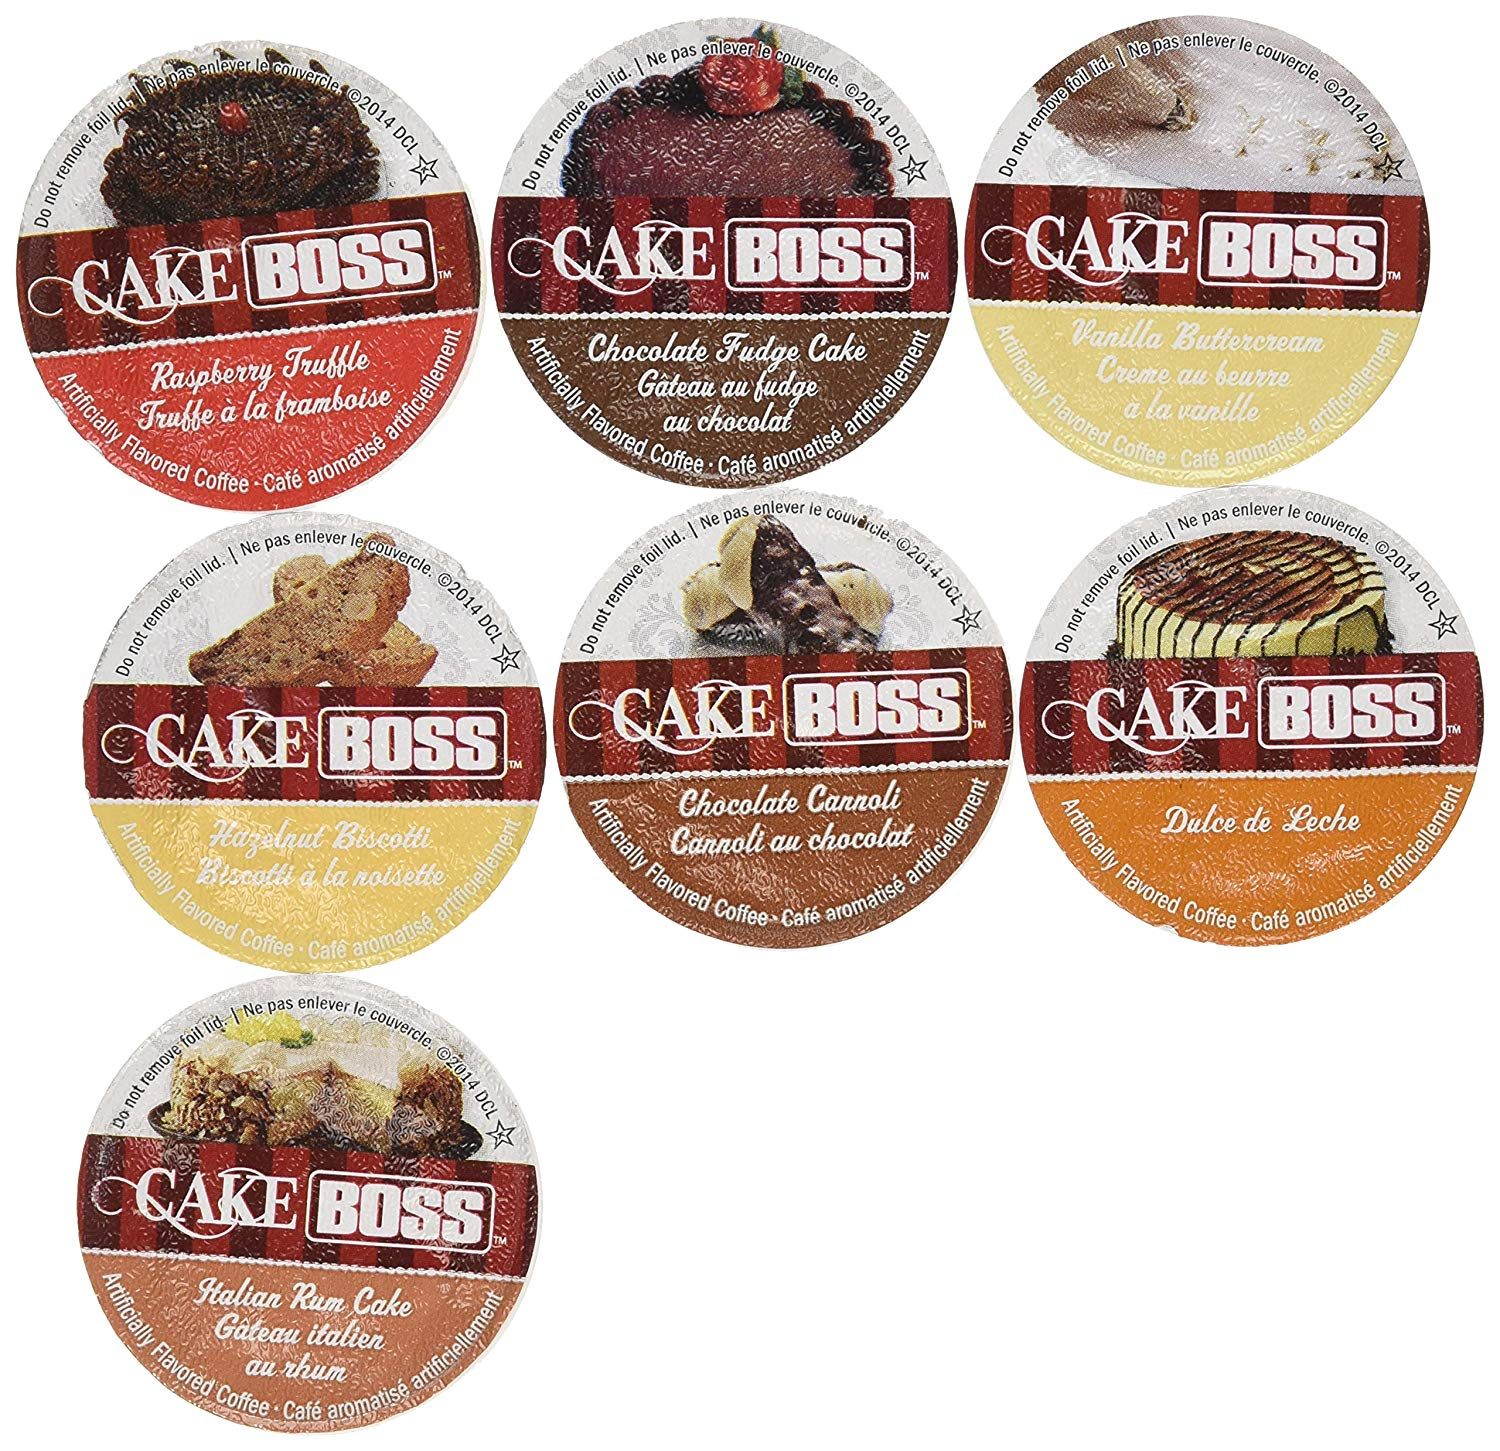 20 Cup Cake Boss® FLAVORED ONLY Coffee Sampler! 7 New Delicious Flavors! NO DECAF! Chocolate Cannoli, Italian Rum Cake, Raspberry Truffle, Dulce De Leche (caramel) + So Delicious!